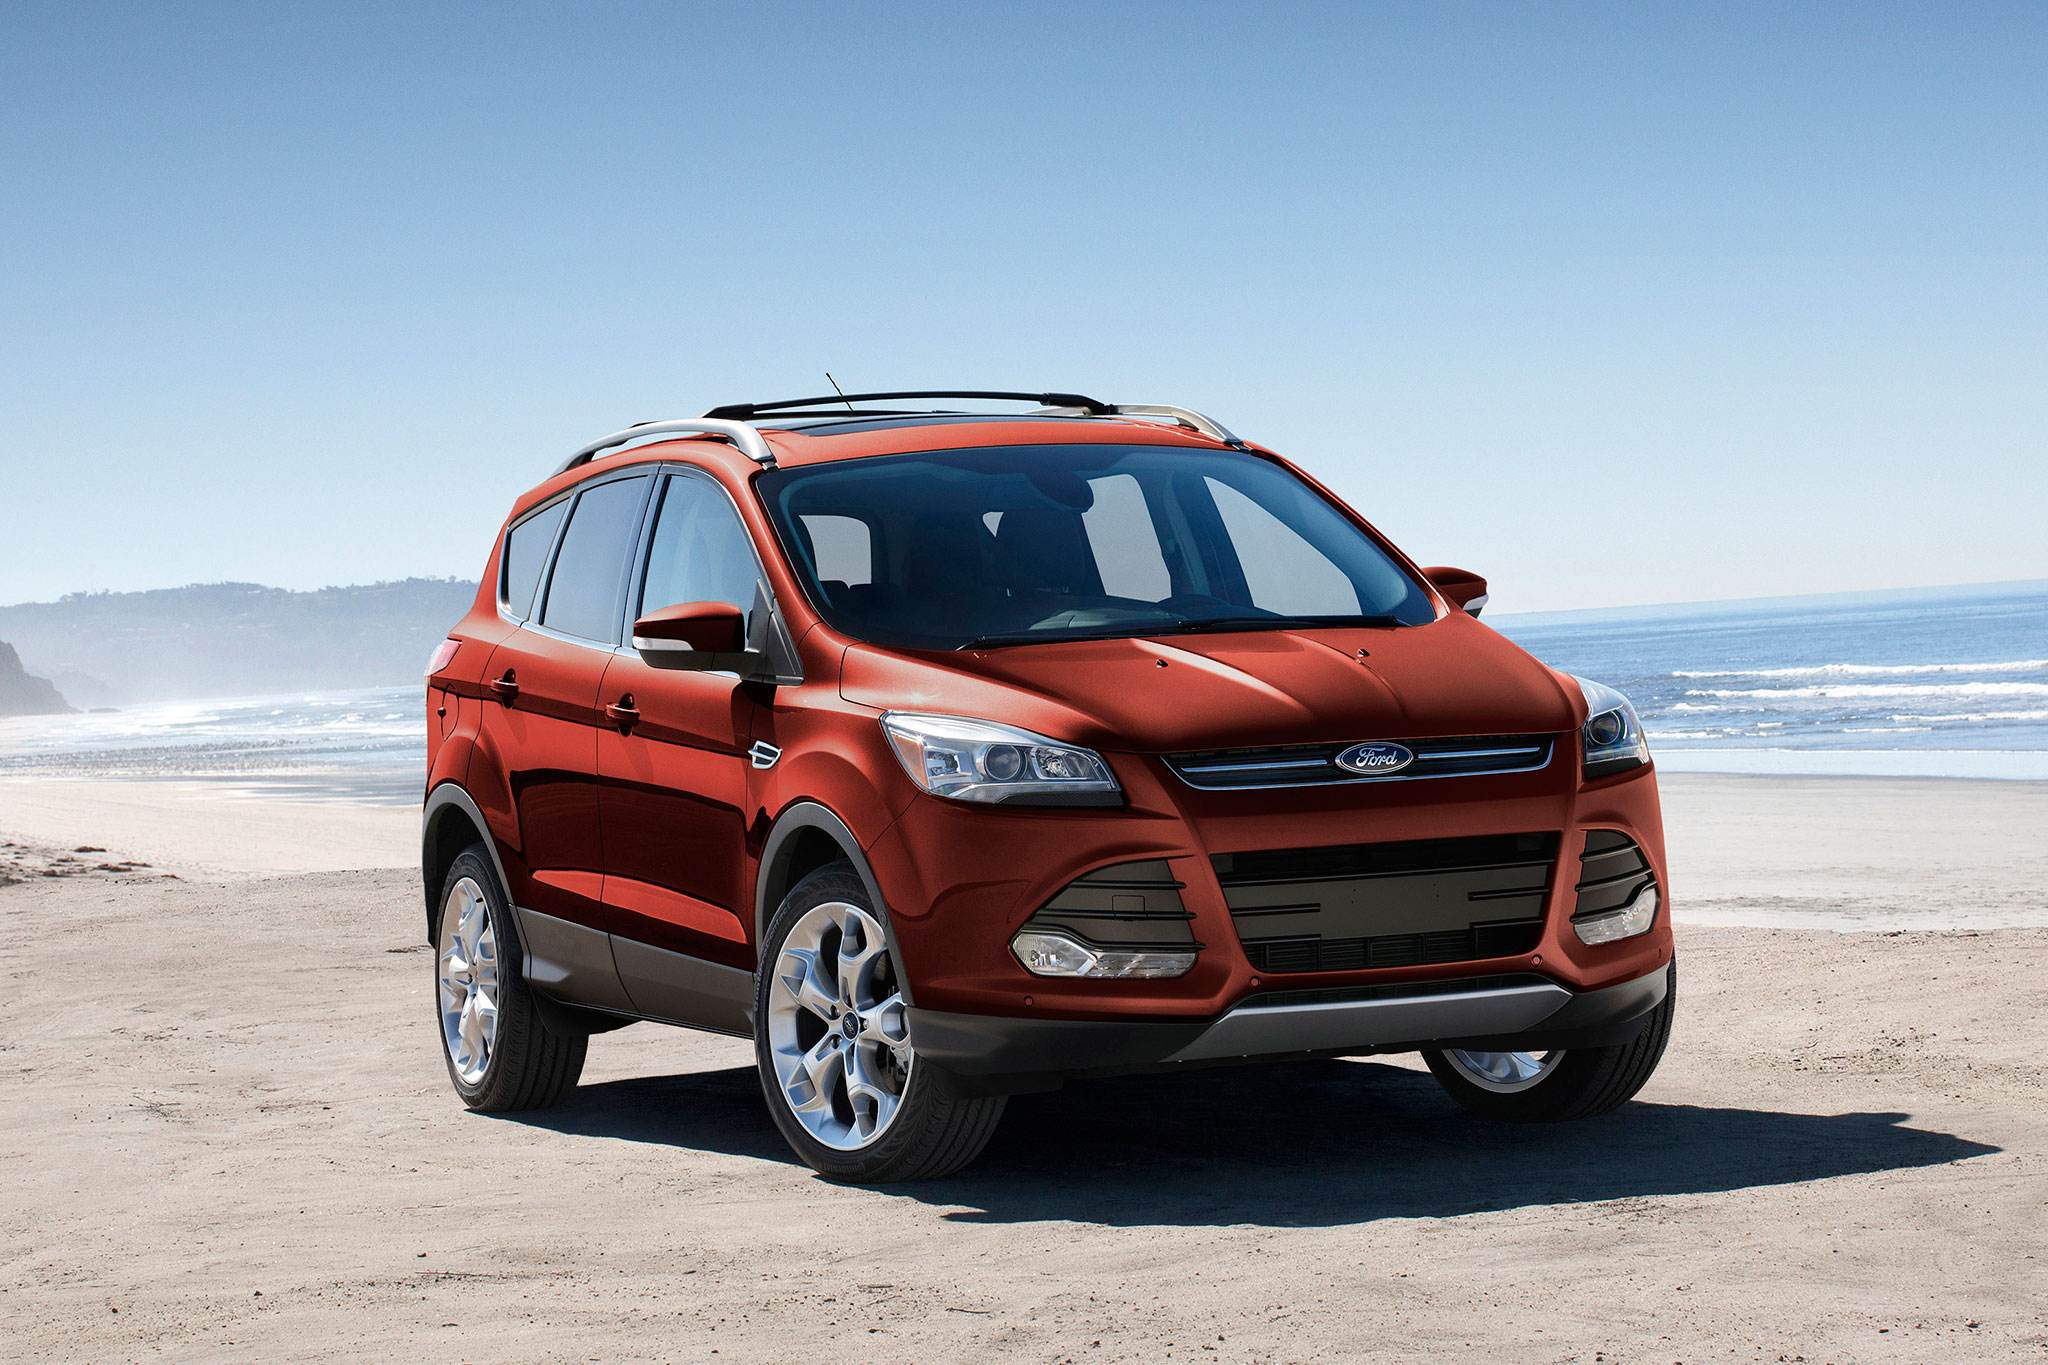 Recalls ford chevrolet buick fiat chrysler and dodge models for Ford escape exterior colors 2014